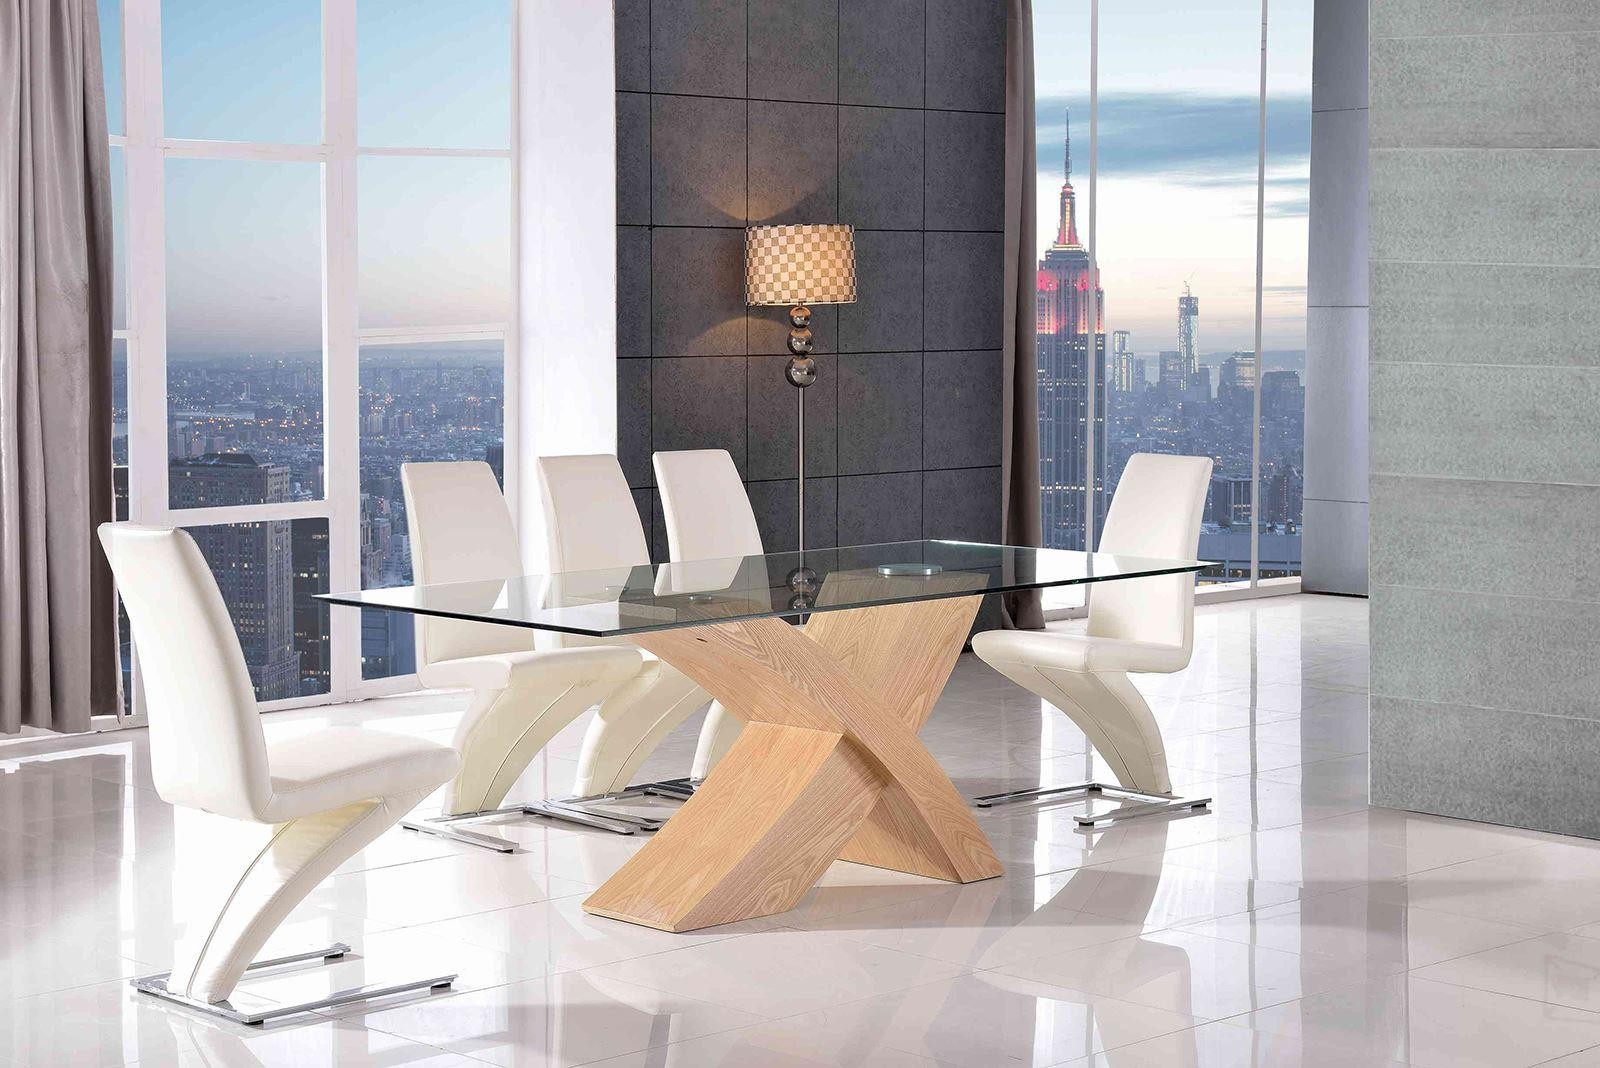 Valencia Black 200cm Wood and Glass Dining Table with 6 Zed Designer Dining Chairs [Ivory]